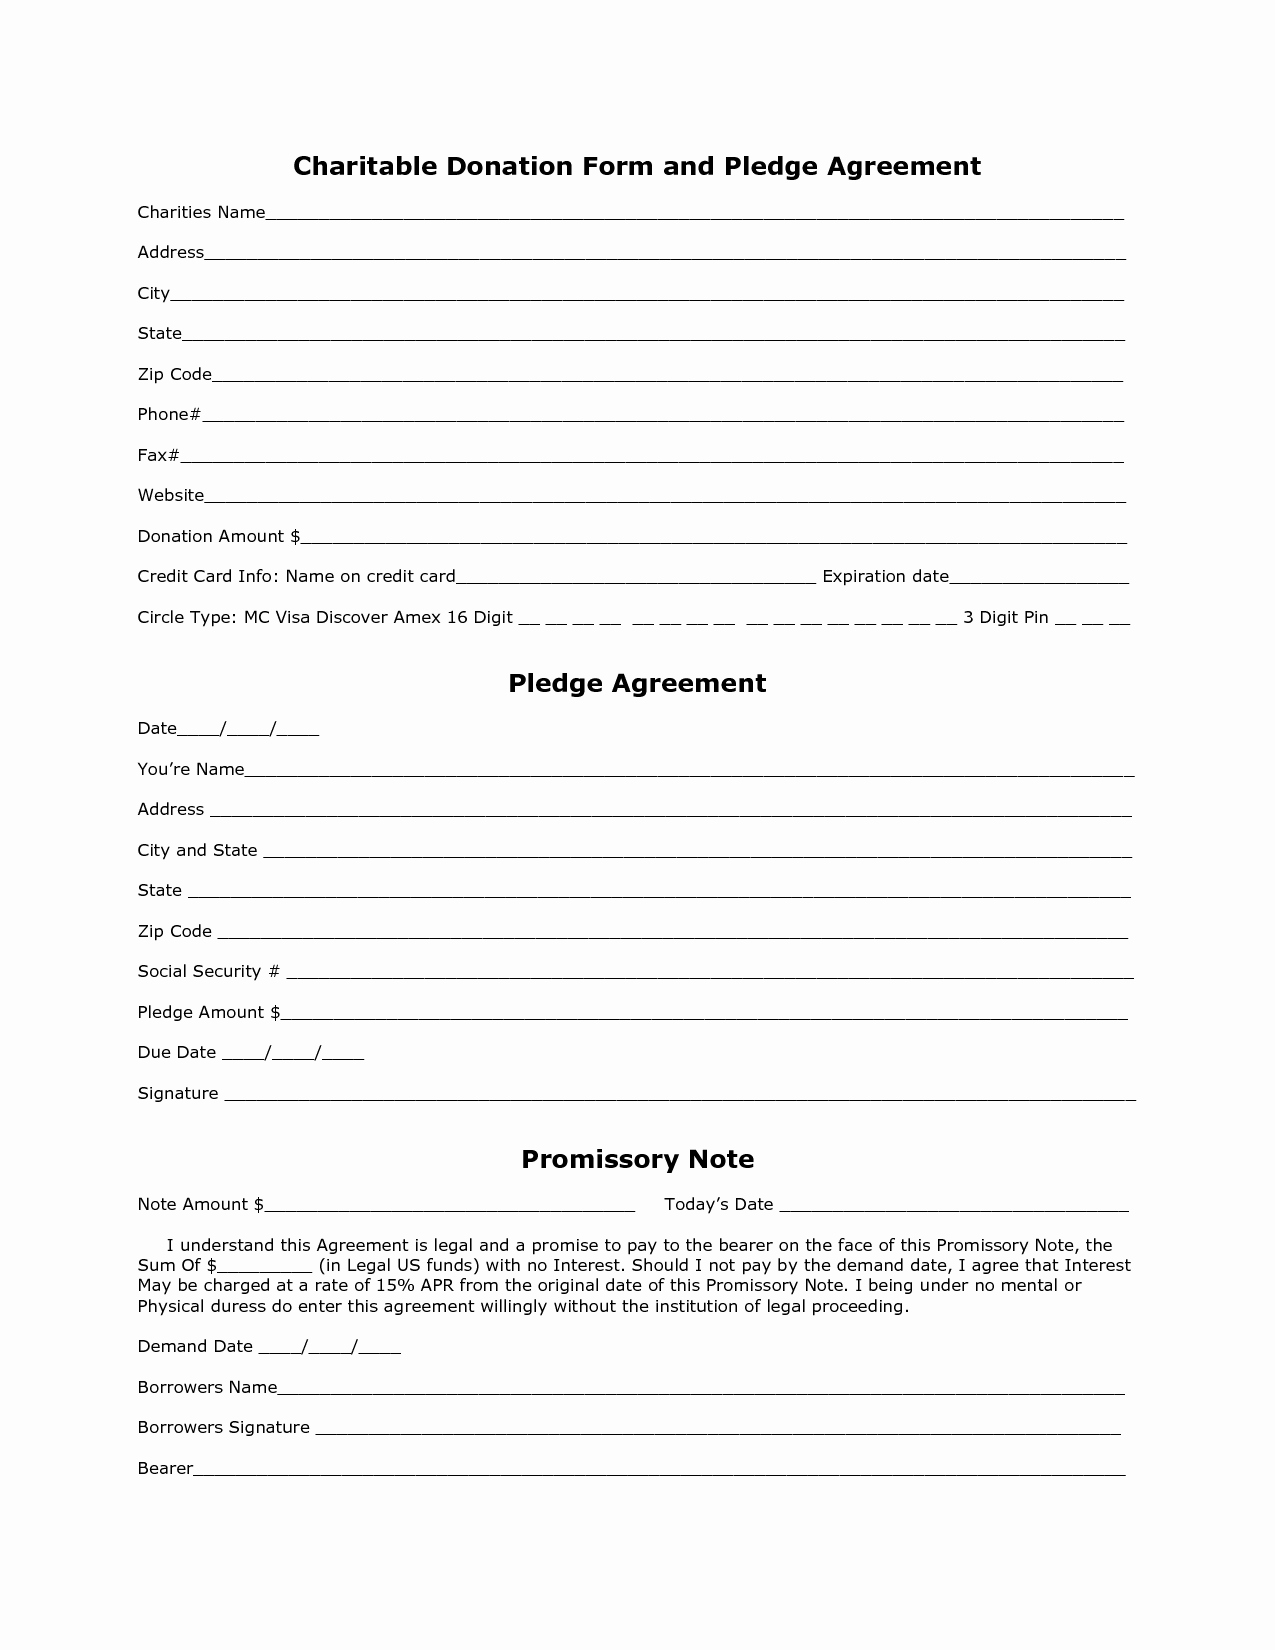 Charitable Donation form Template Elegant Charity Donation form Template Free Printable Documents